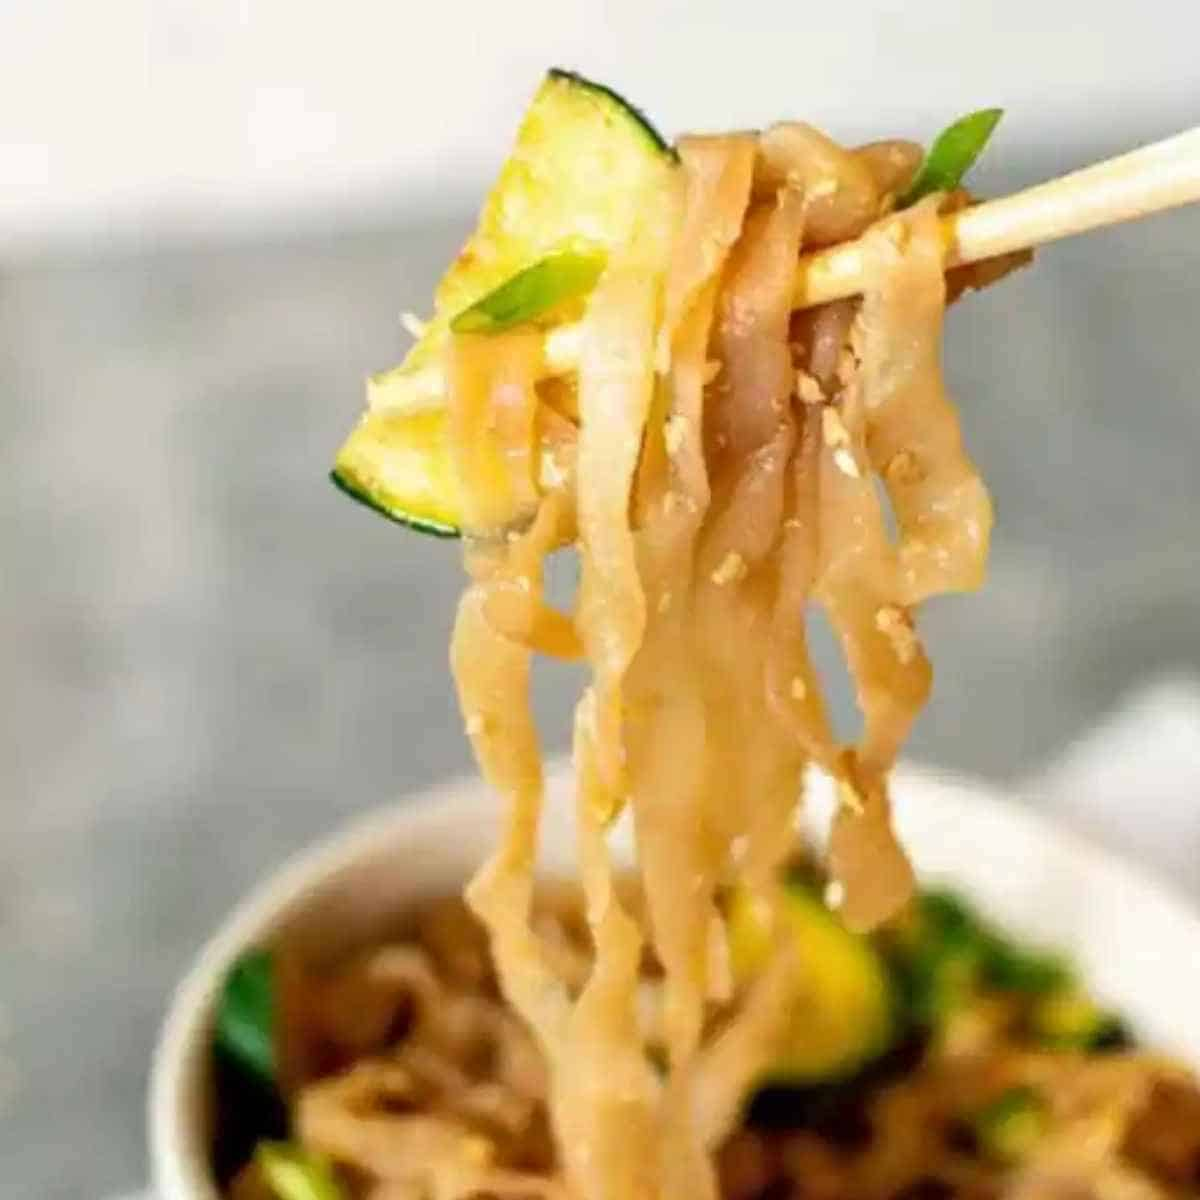 low carb asian noodle bowl - Shirataki: The True Keto Approved Asian Noodle